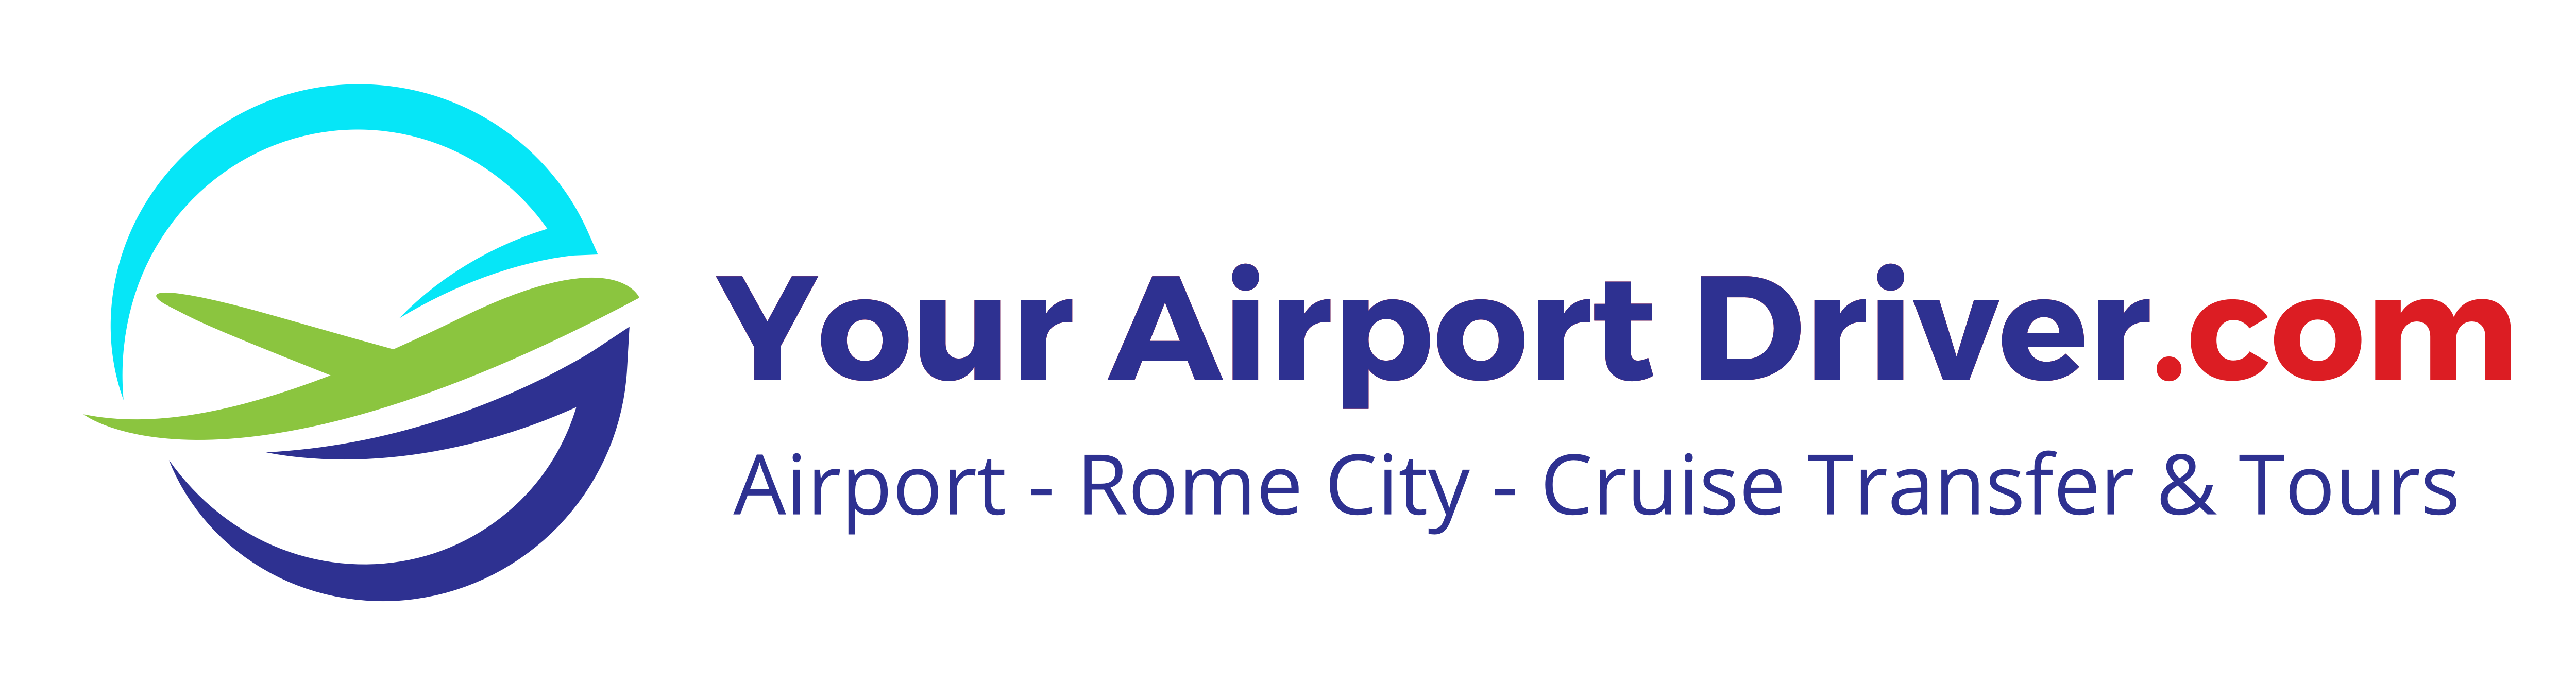 Driver clipart departure. Yourairportdriver airport rome city